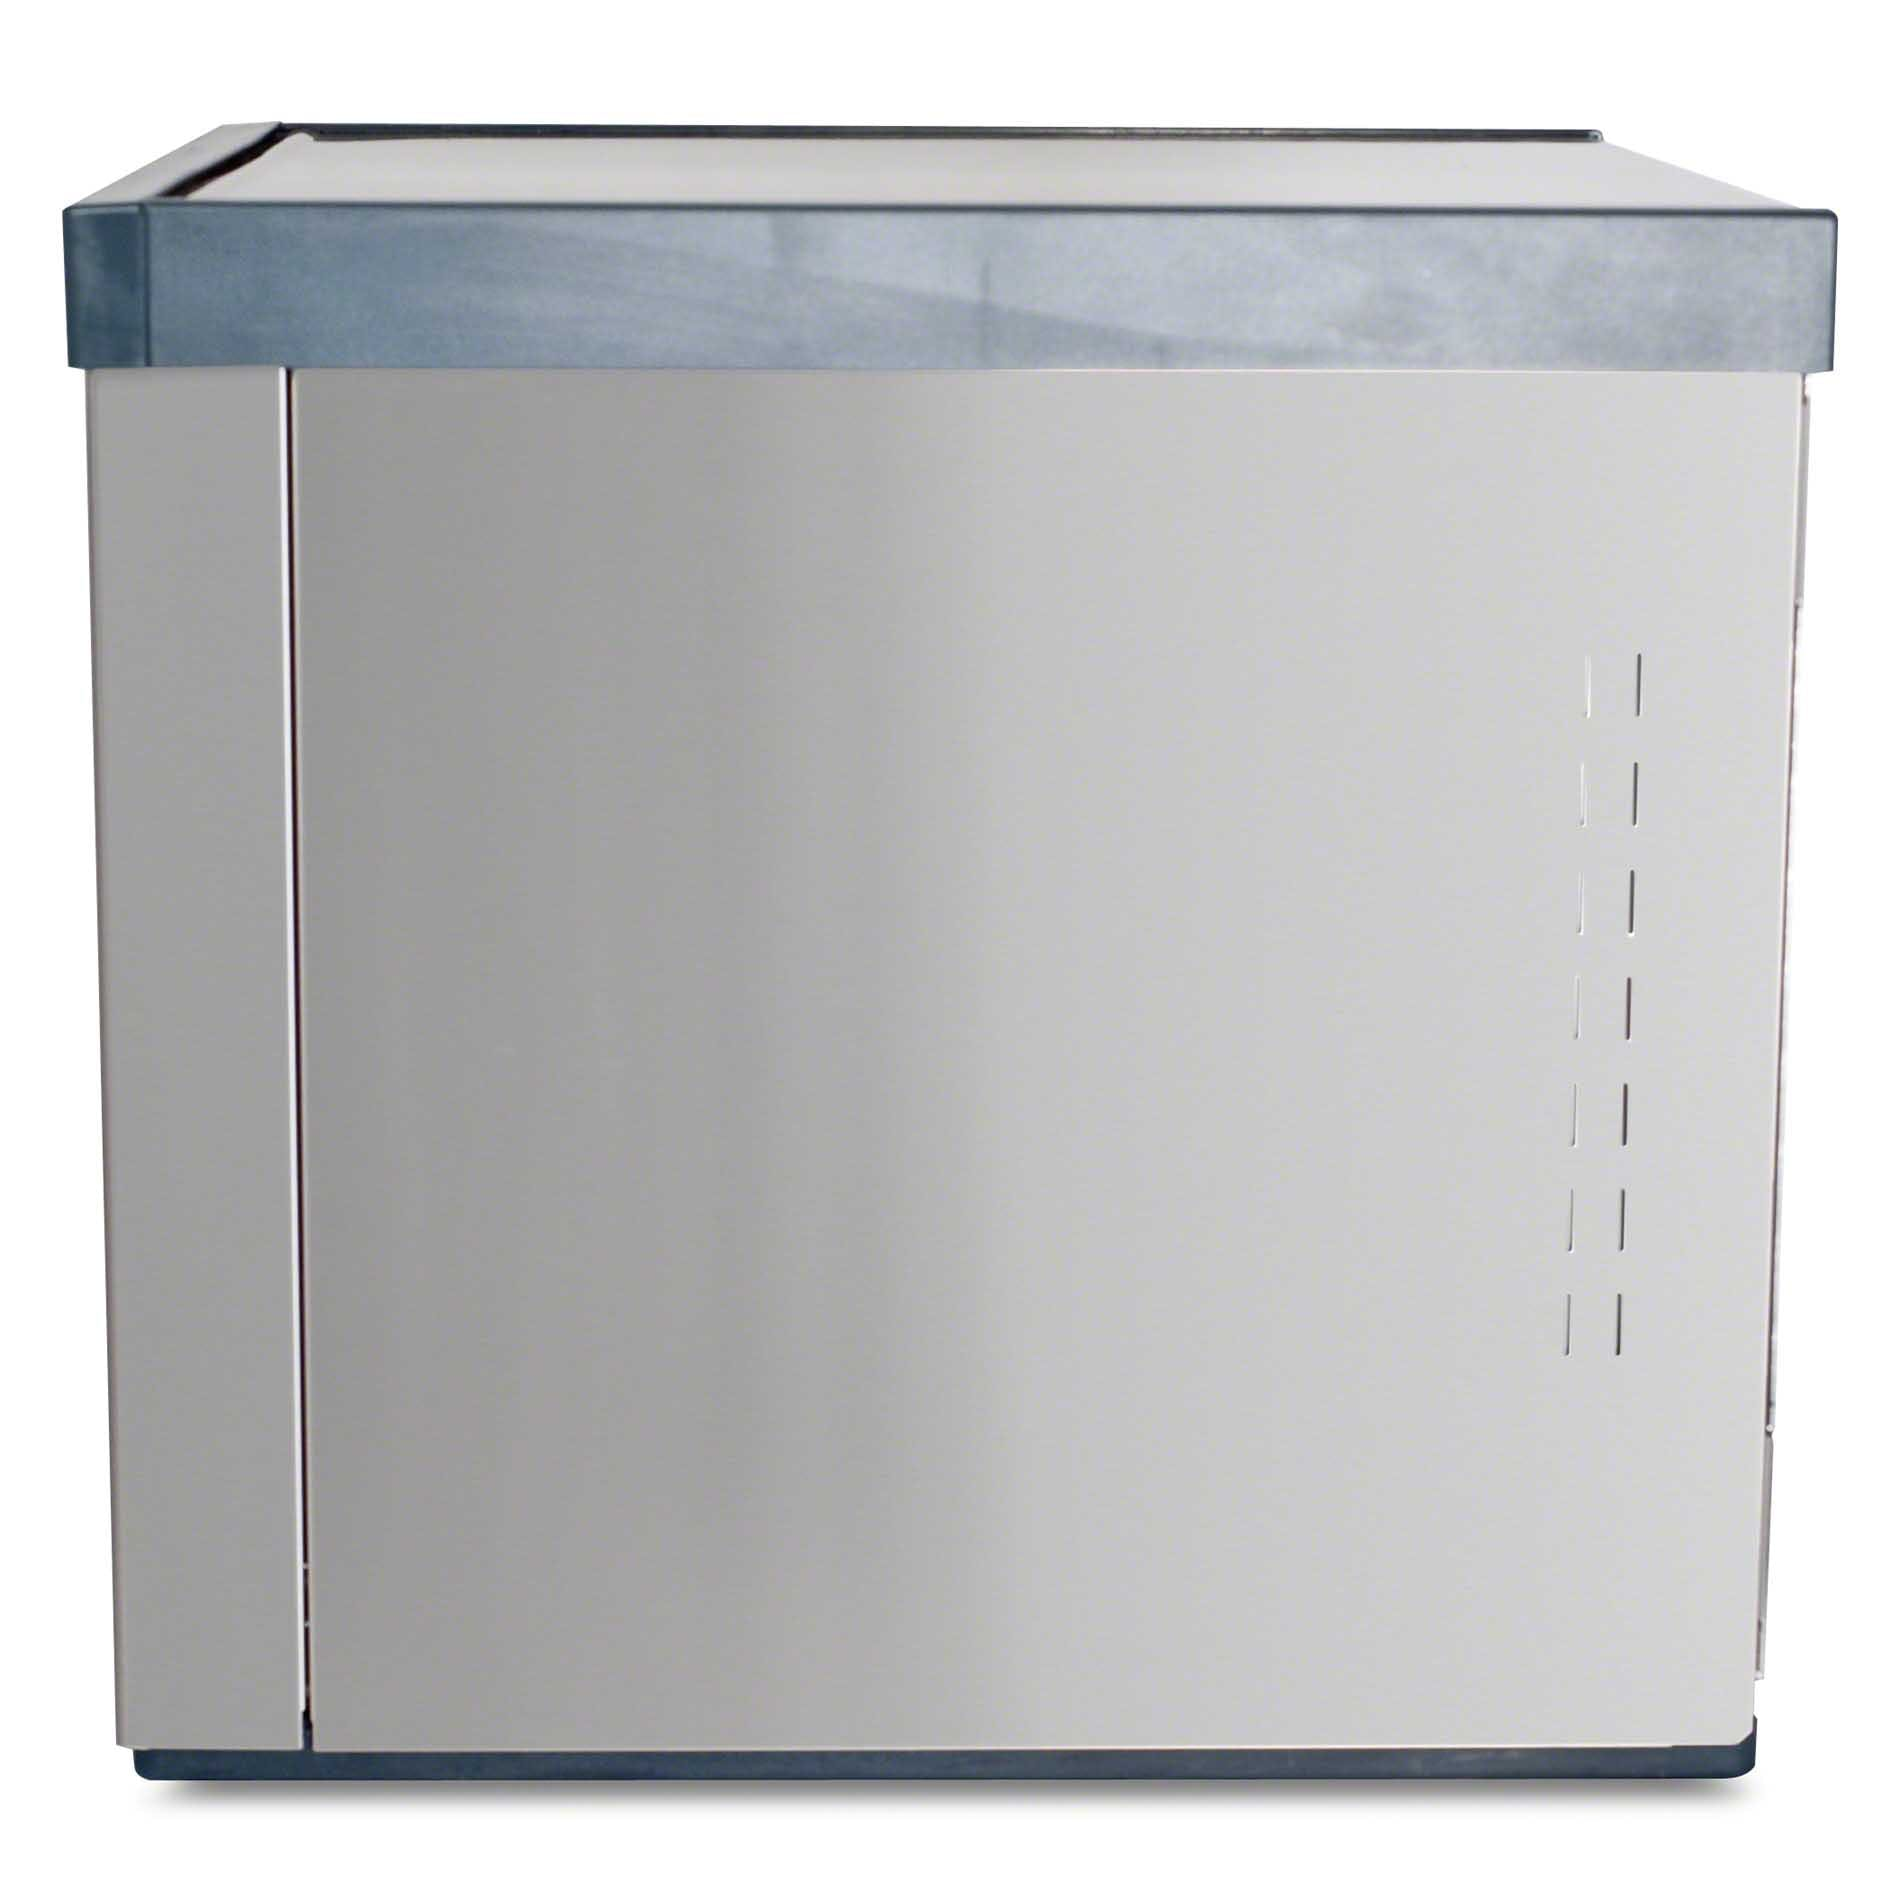 Scotsman - C0522SA-1A 475 lb Half Size Cube Ice Machine - Prodigy Series Ice machine sold by Food Service Warehouse